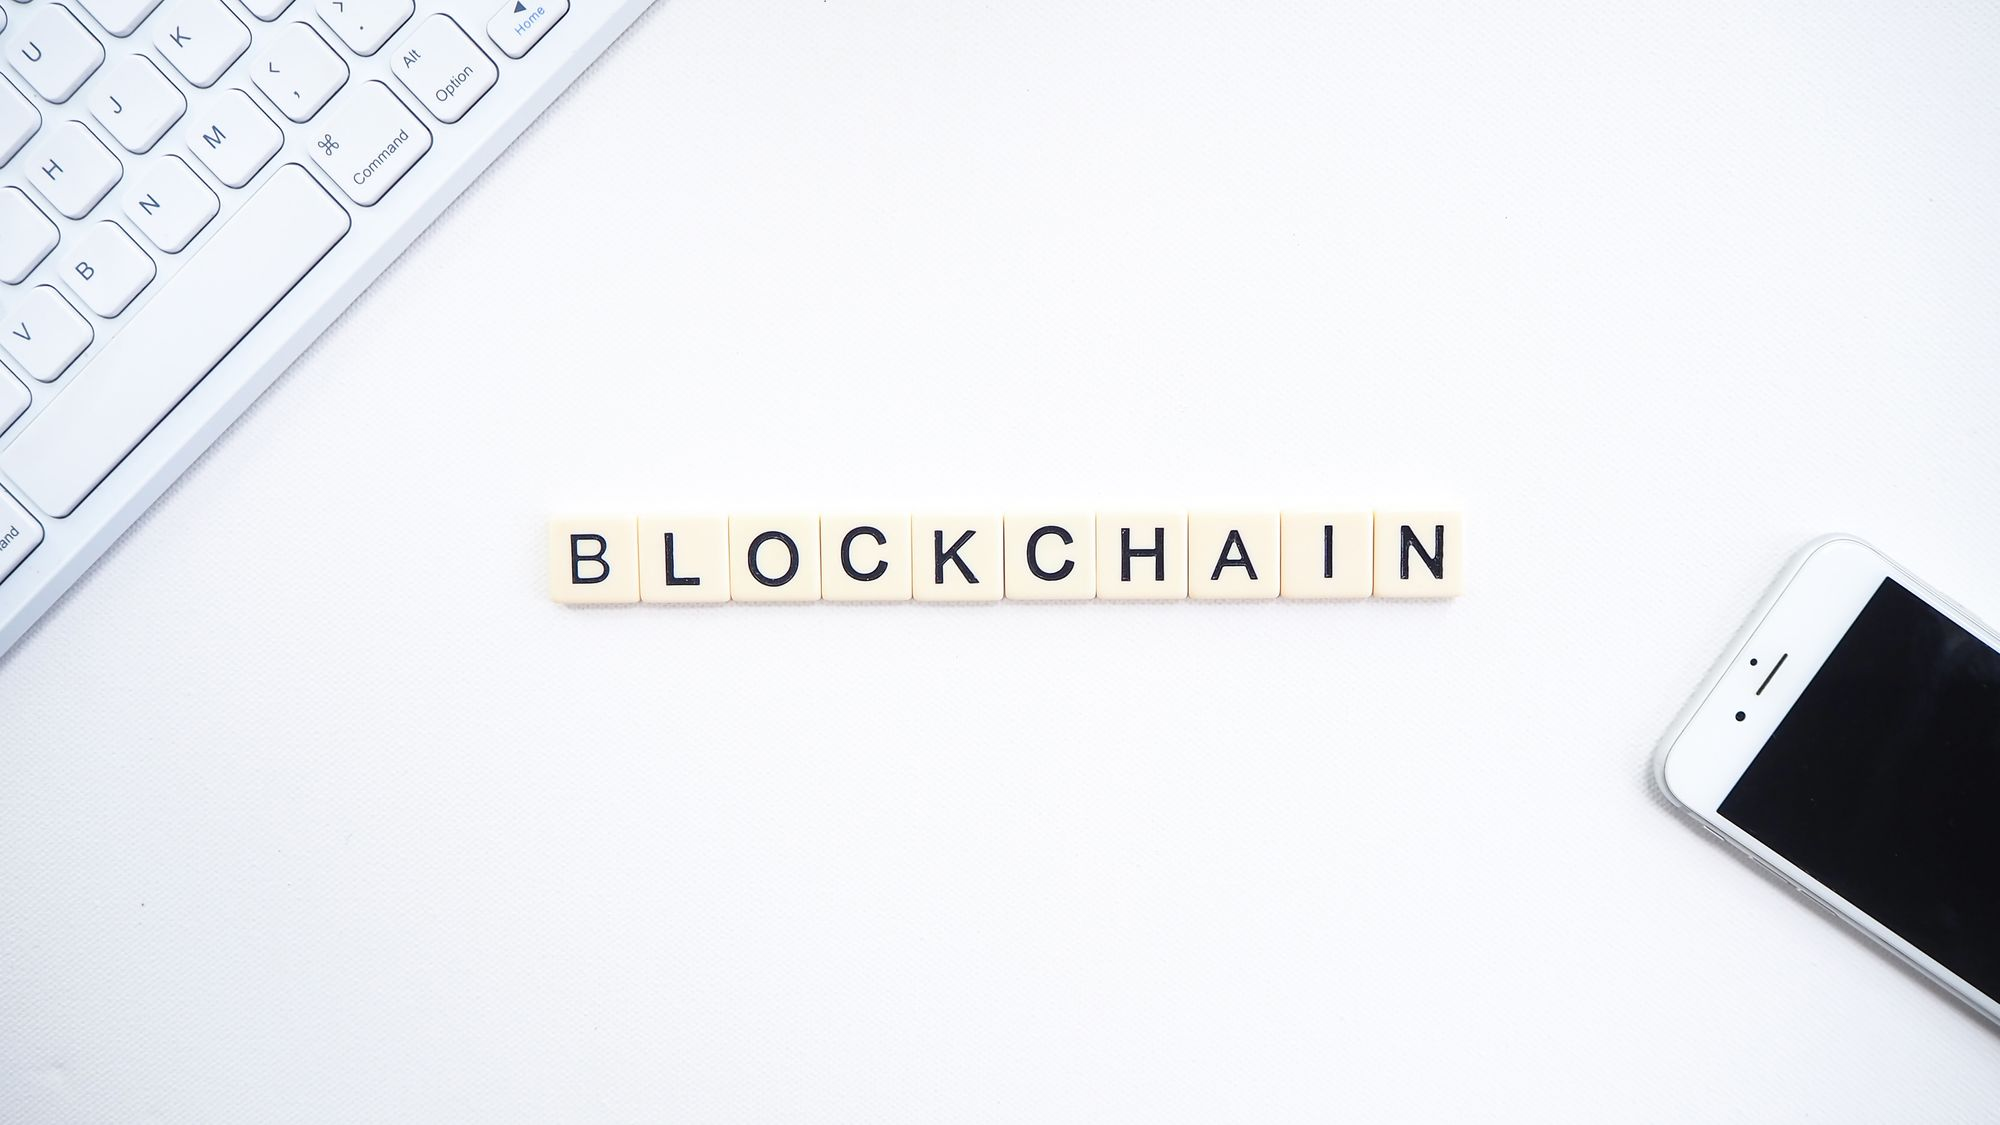 What You Should Know About Blockchain And Its Applications